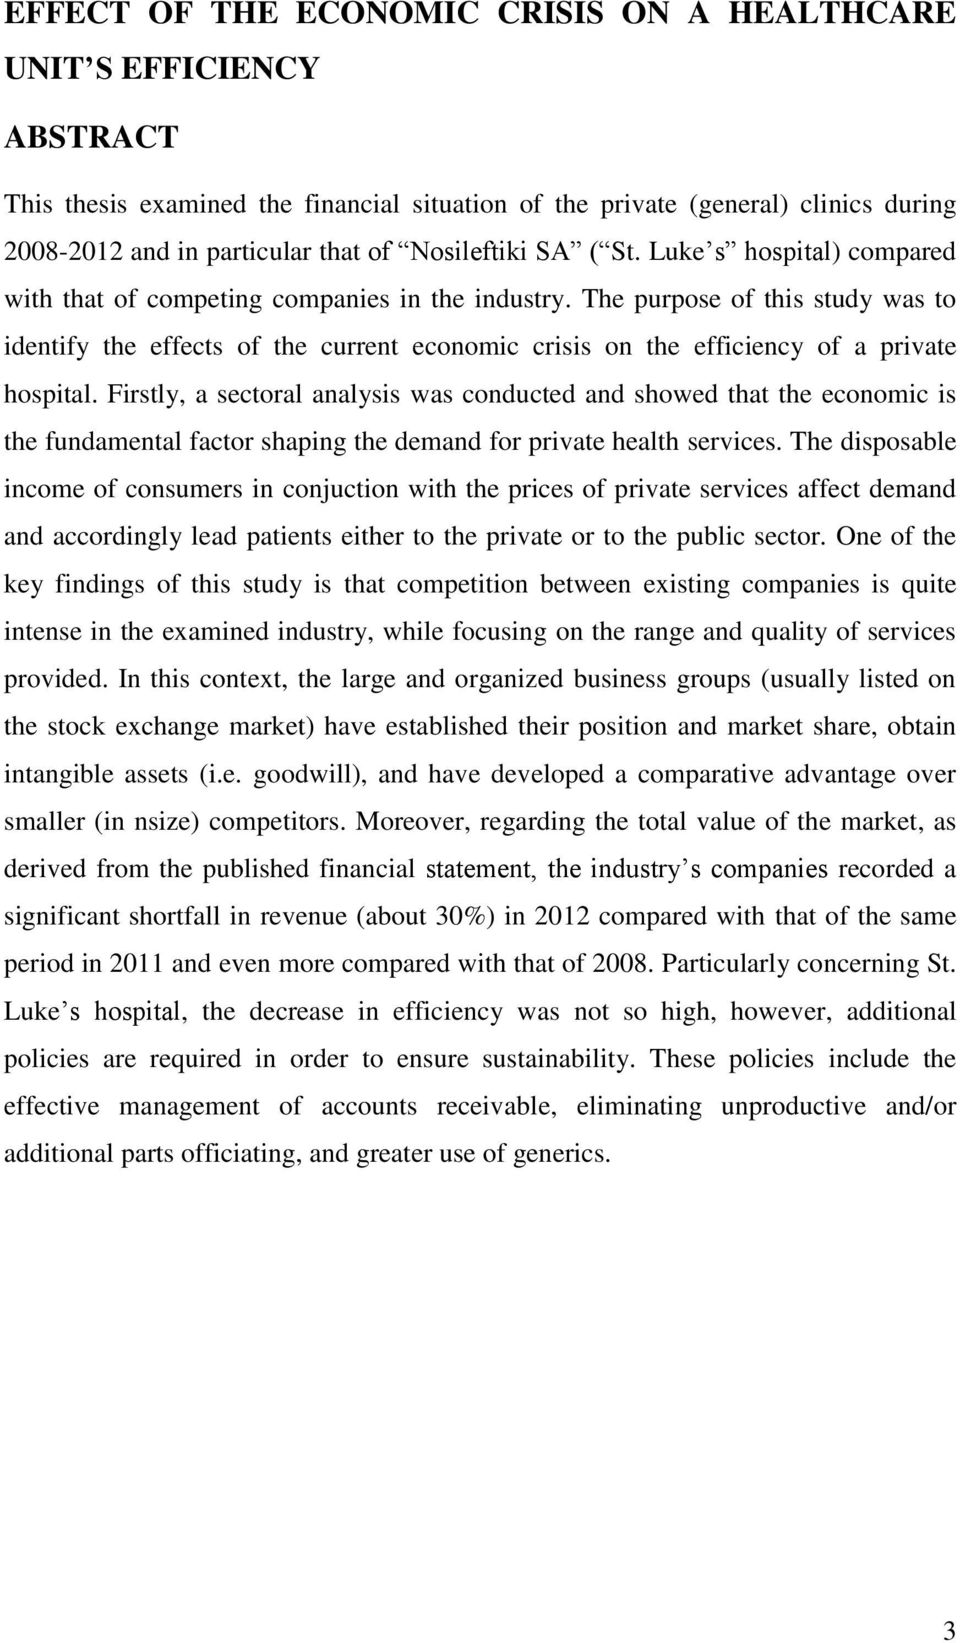 The purpose of this study was to identify the effects of the current economic crisis on the efficiency of a private hospital.